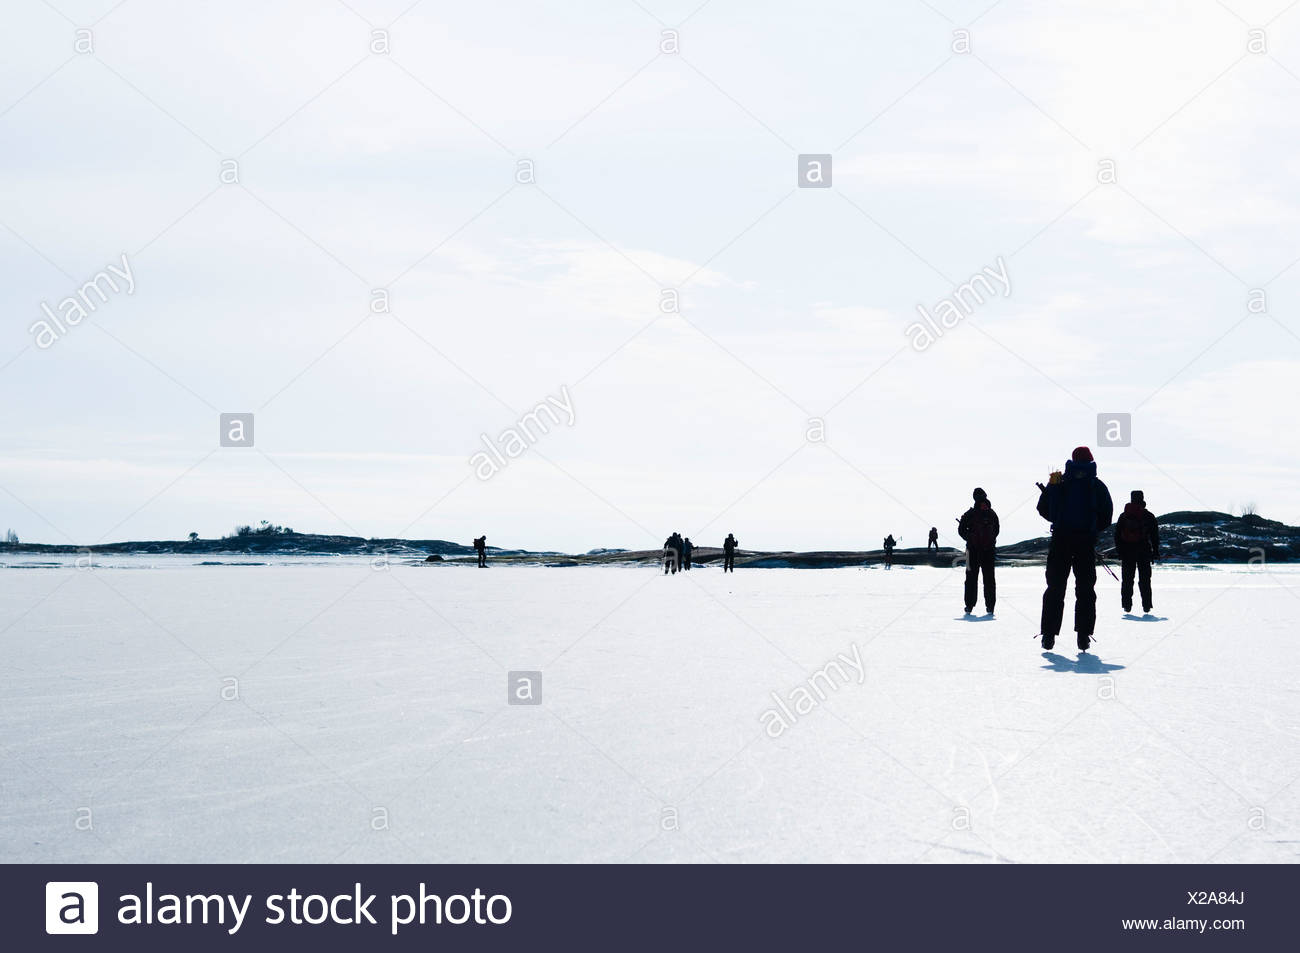 Ice skaters out on the ice - Stock Image